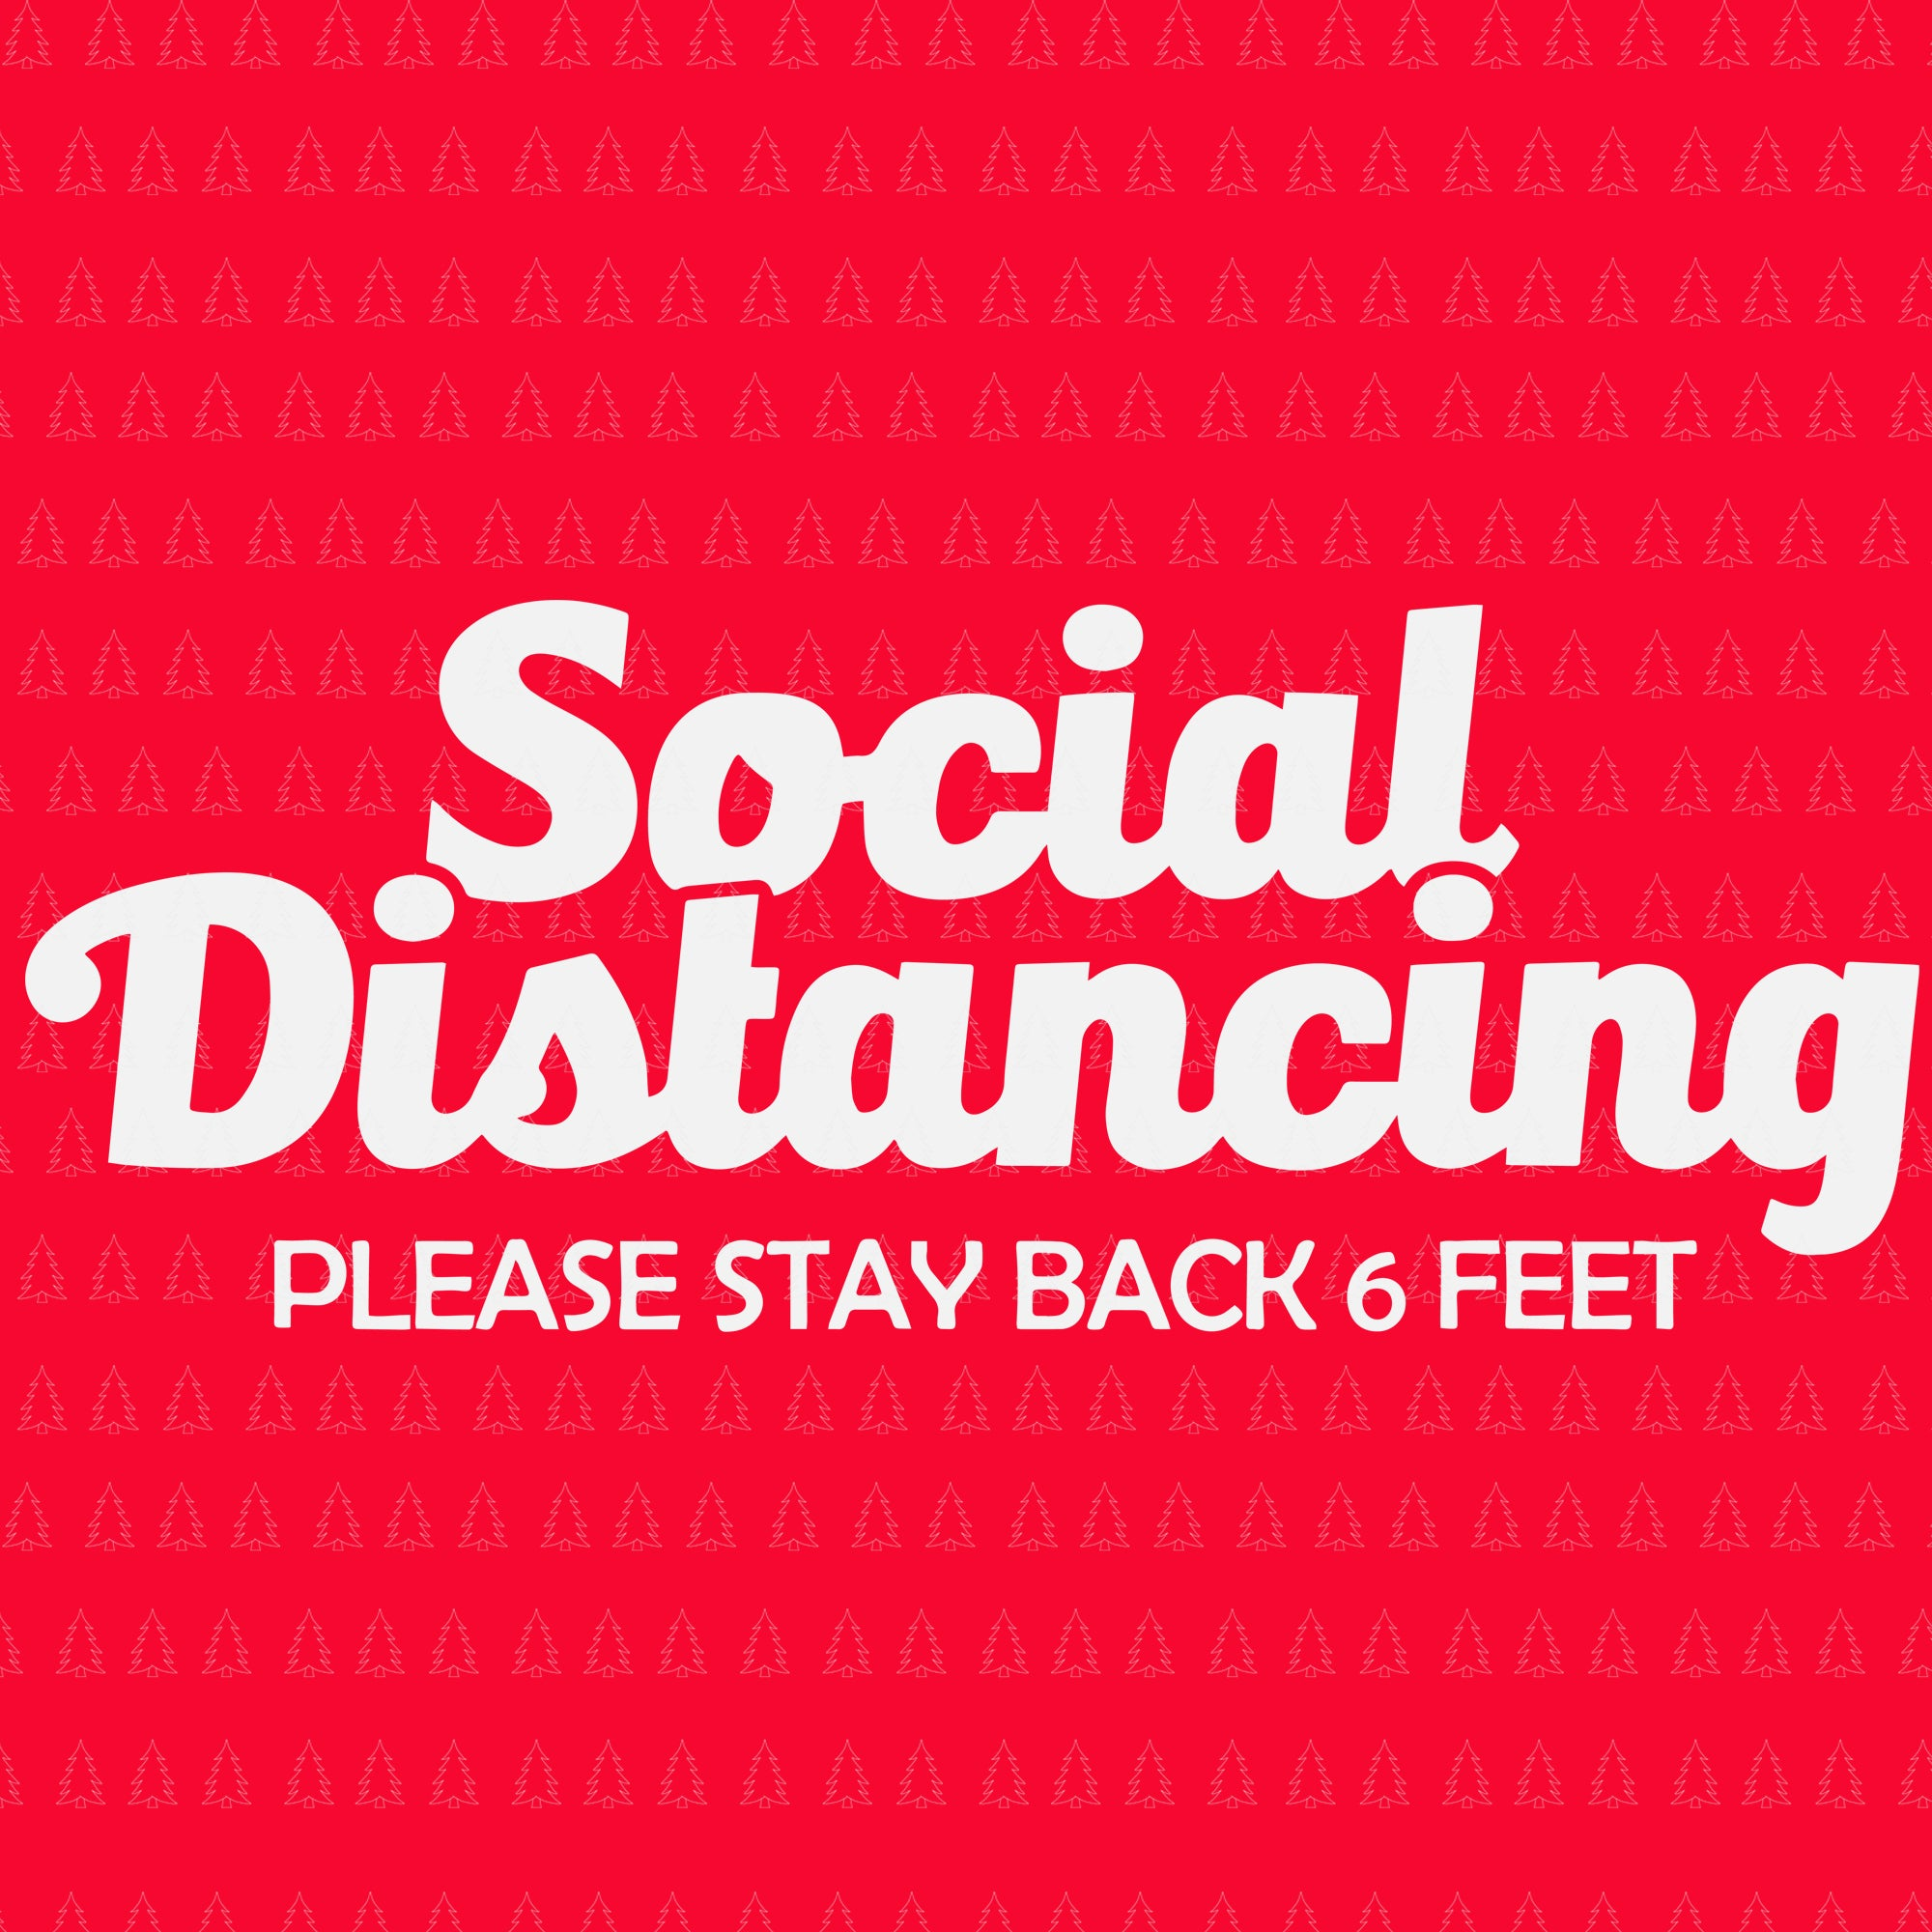 Social distancing please stay back 6 feet svg, social distancing please stay back 6 feet , social distancing please stay back 6 feet png, social distancing svg, social distancing